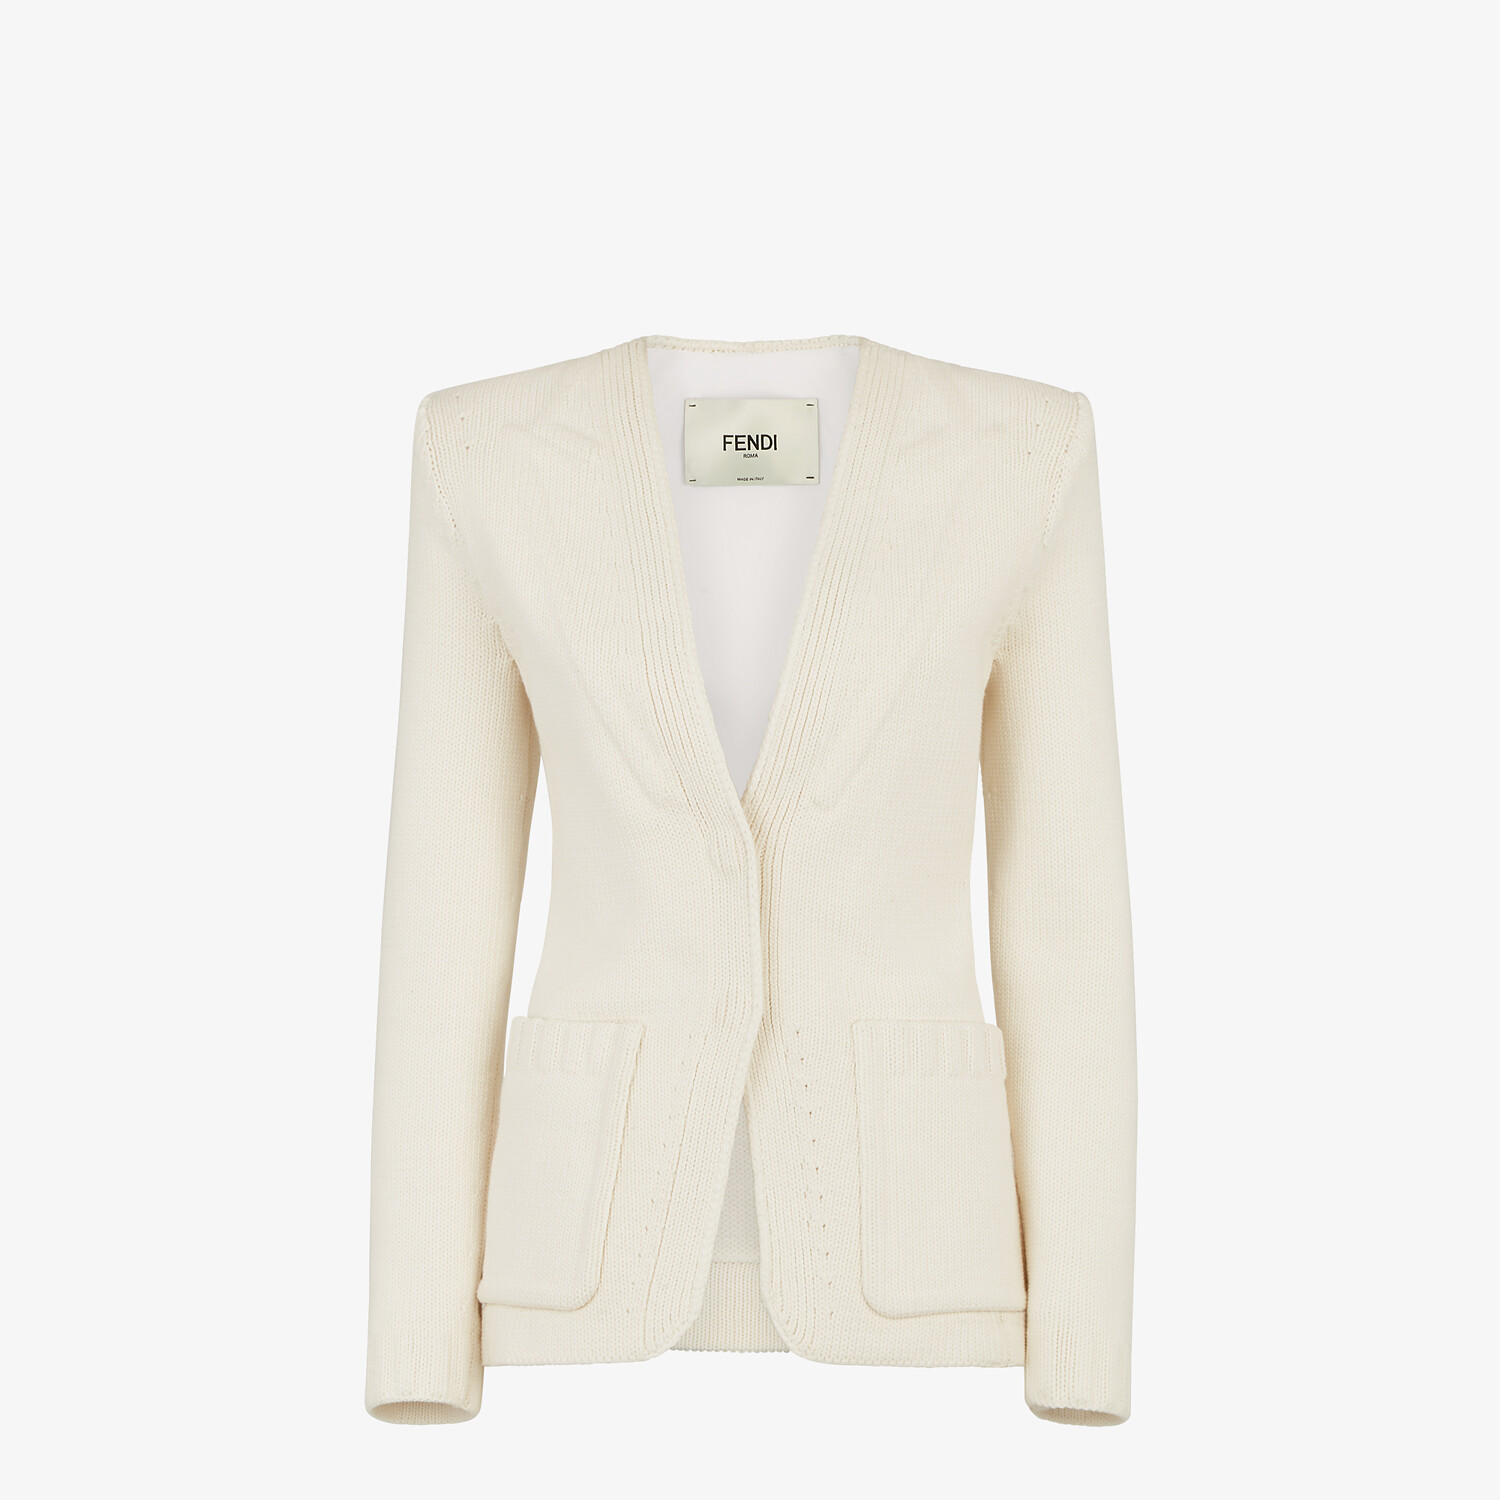 FENDI JACKET - White cotton jacket - view 1 detail